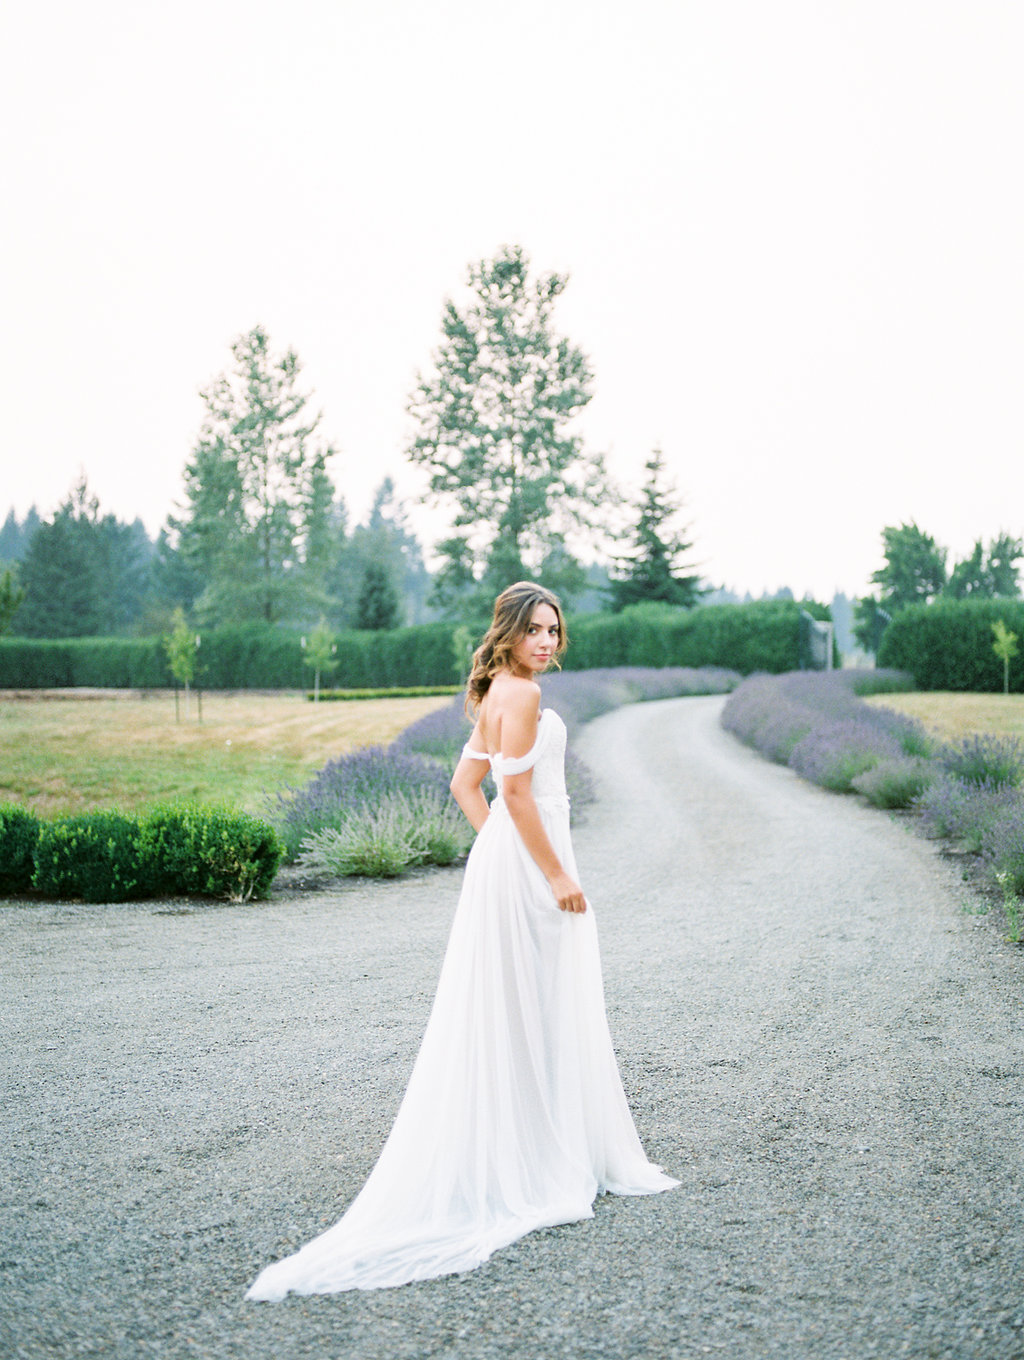 LuxProvenceWeddingInspired-SavanMentorshipbyJonandMochPhotography(74of75).jpg